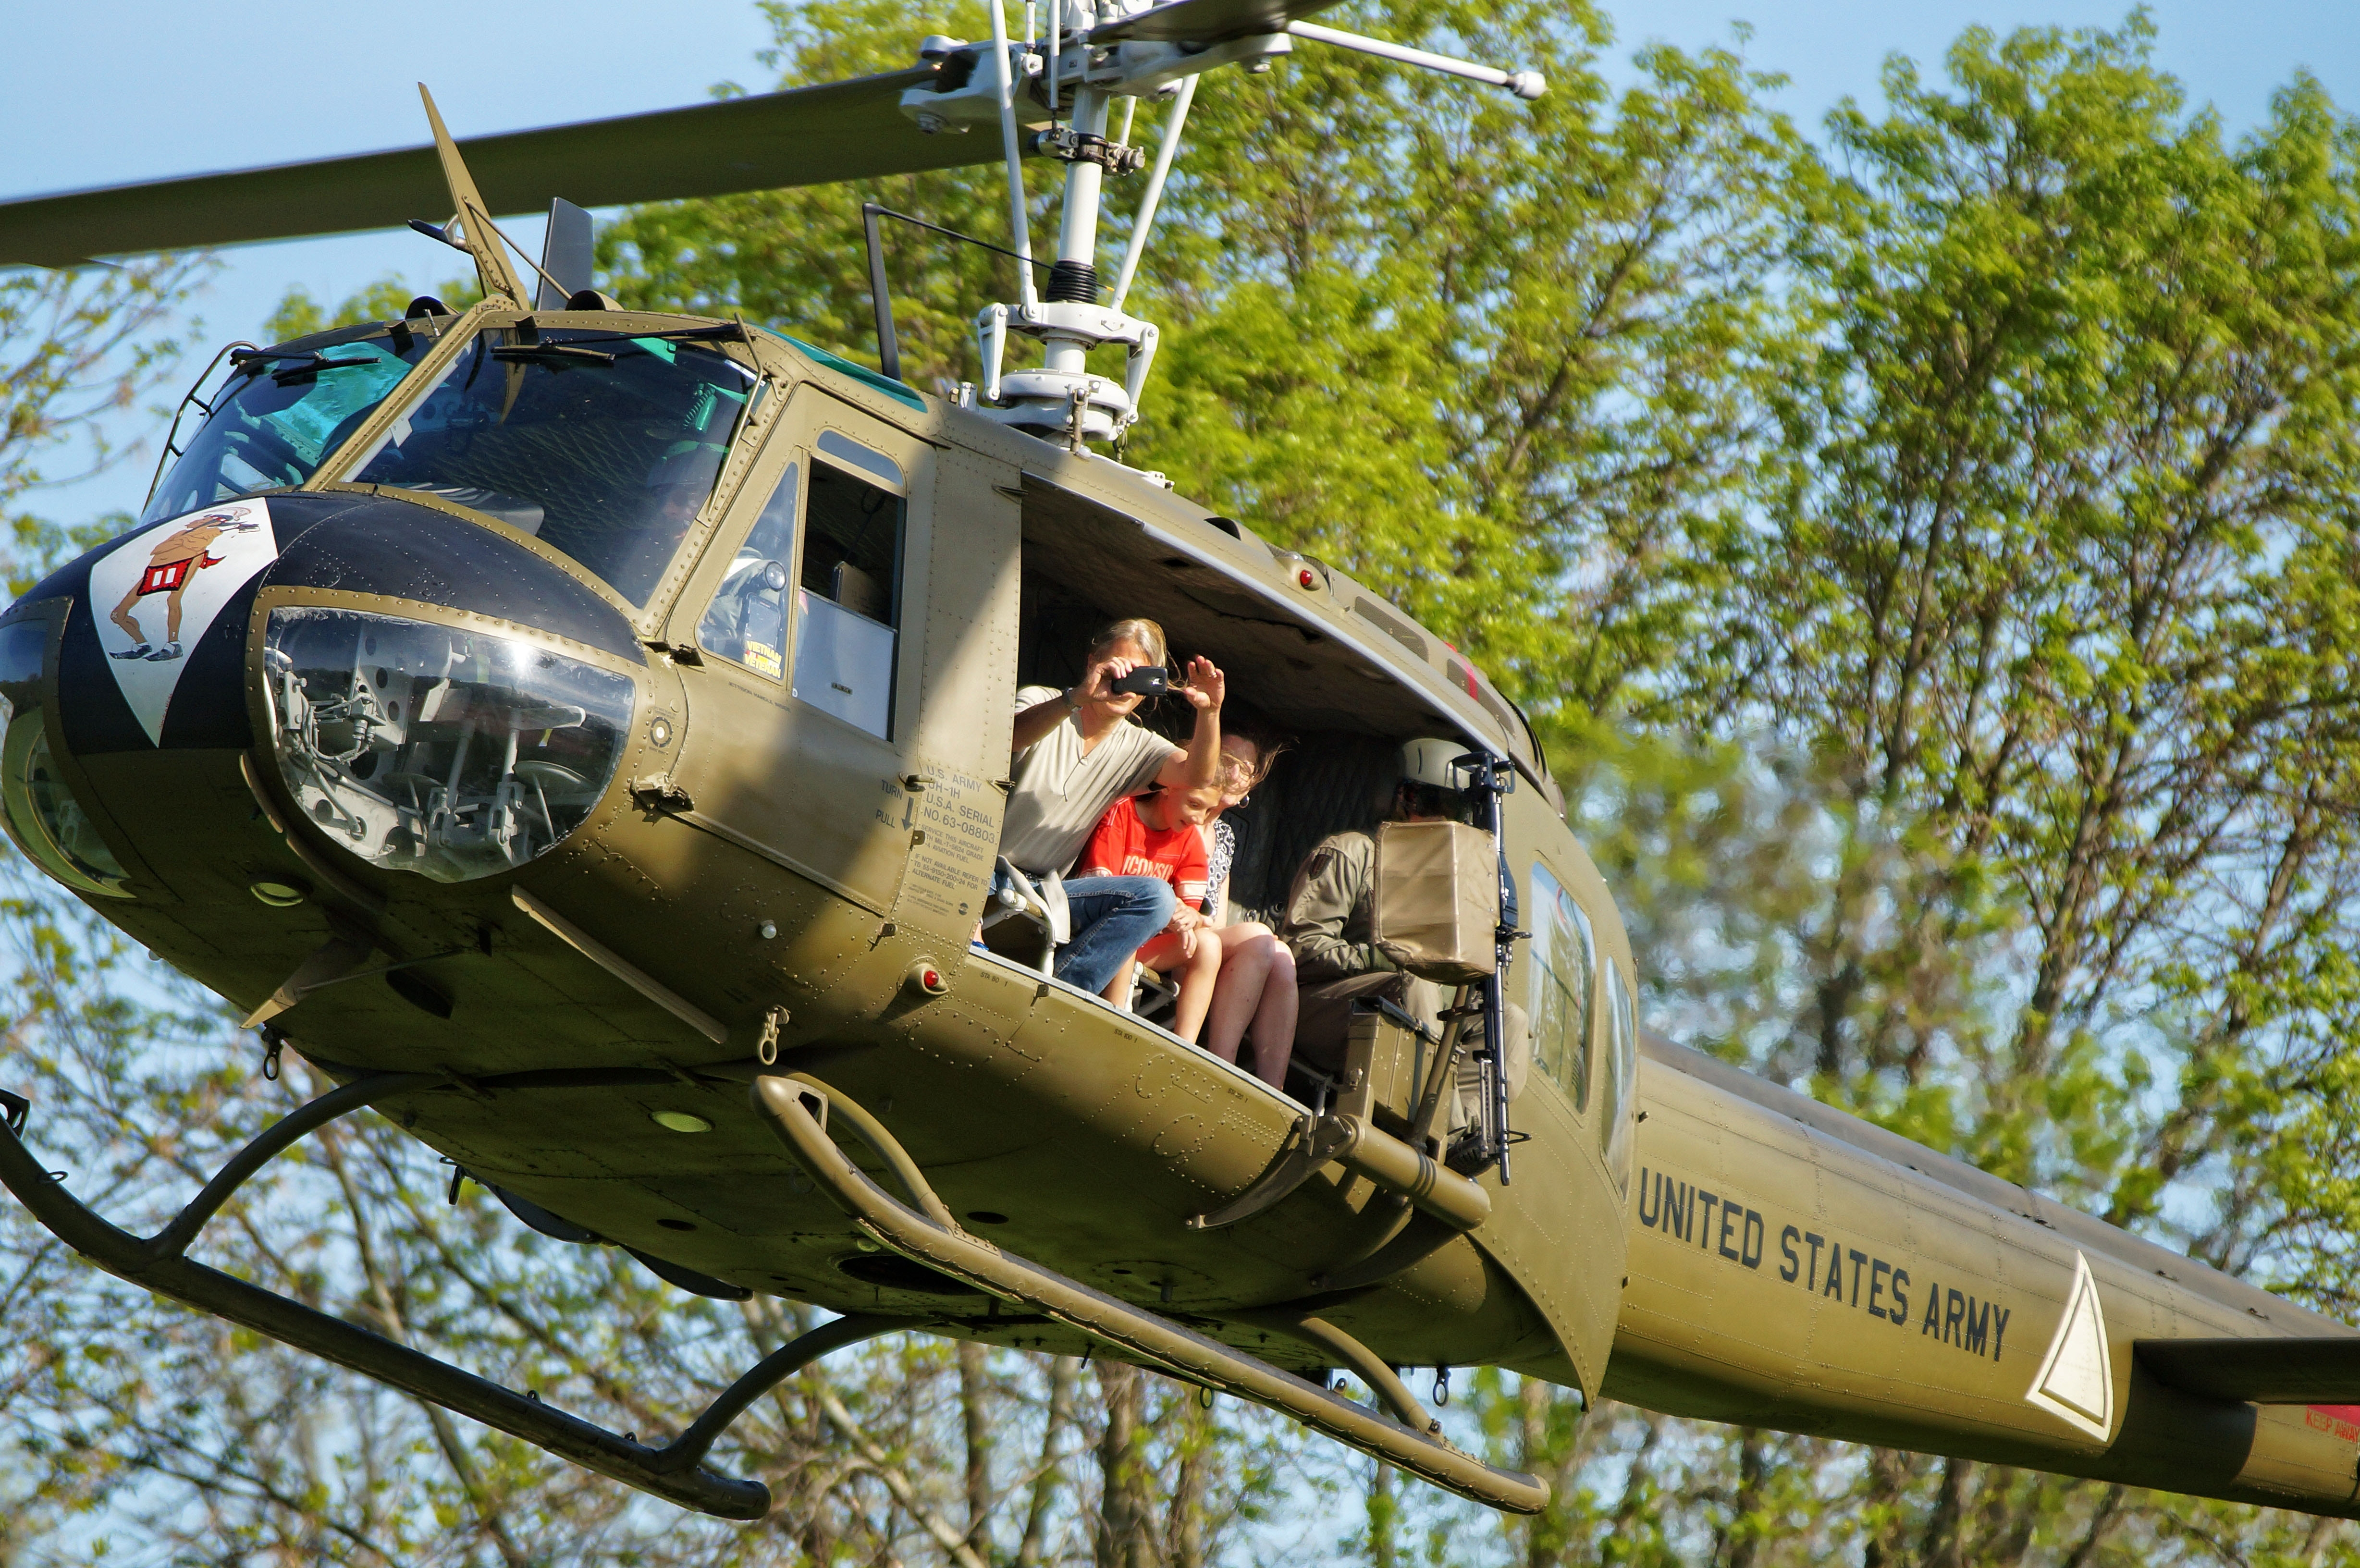 Become a member of the American Huey 369 organization and get a chance to join an open-door flight on the historic copter during Memorial Day observances at Fort Niagara.